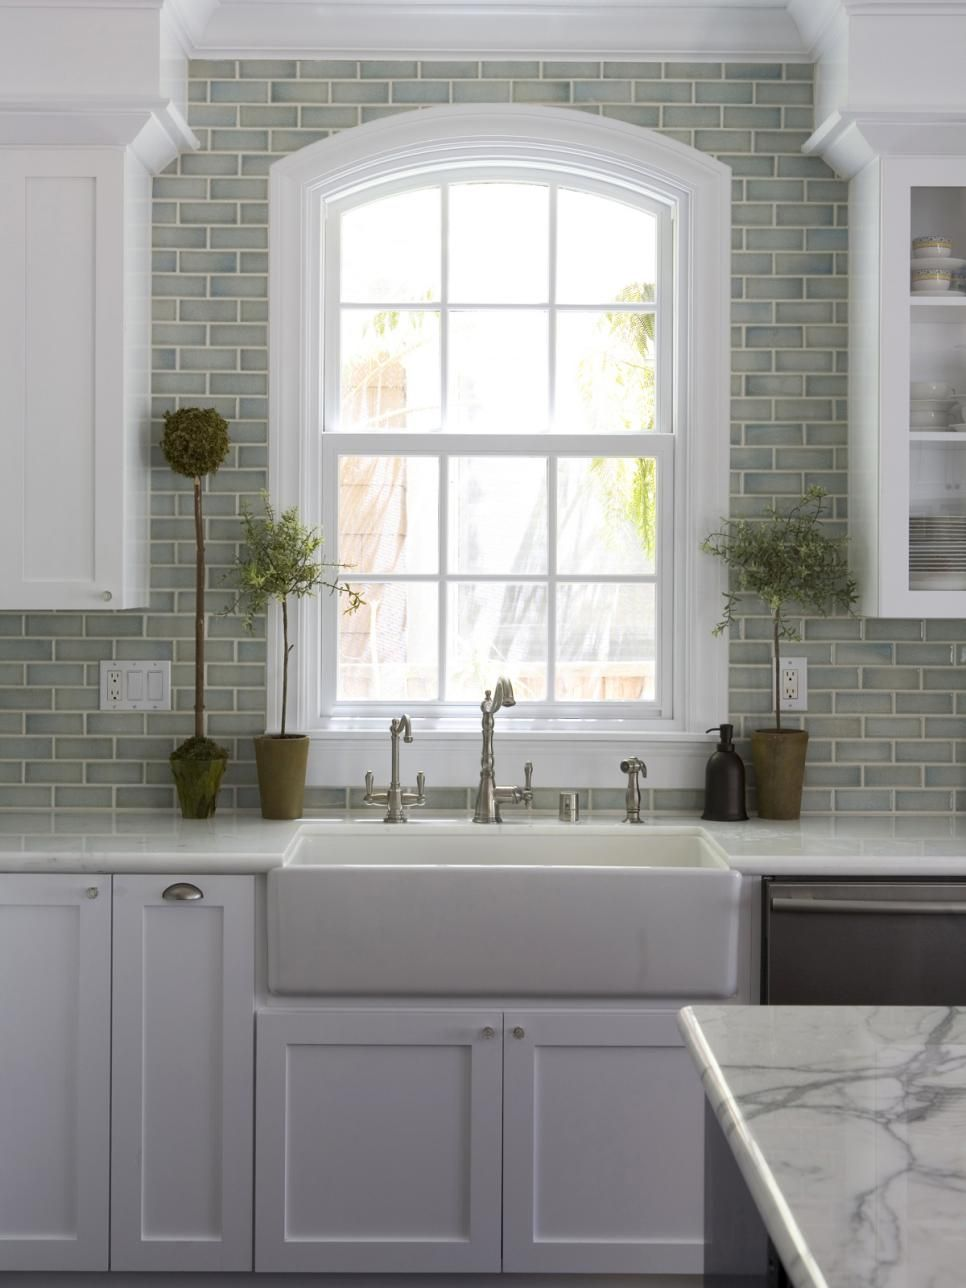 A ceramic farmhouse sink with a brushed nickel